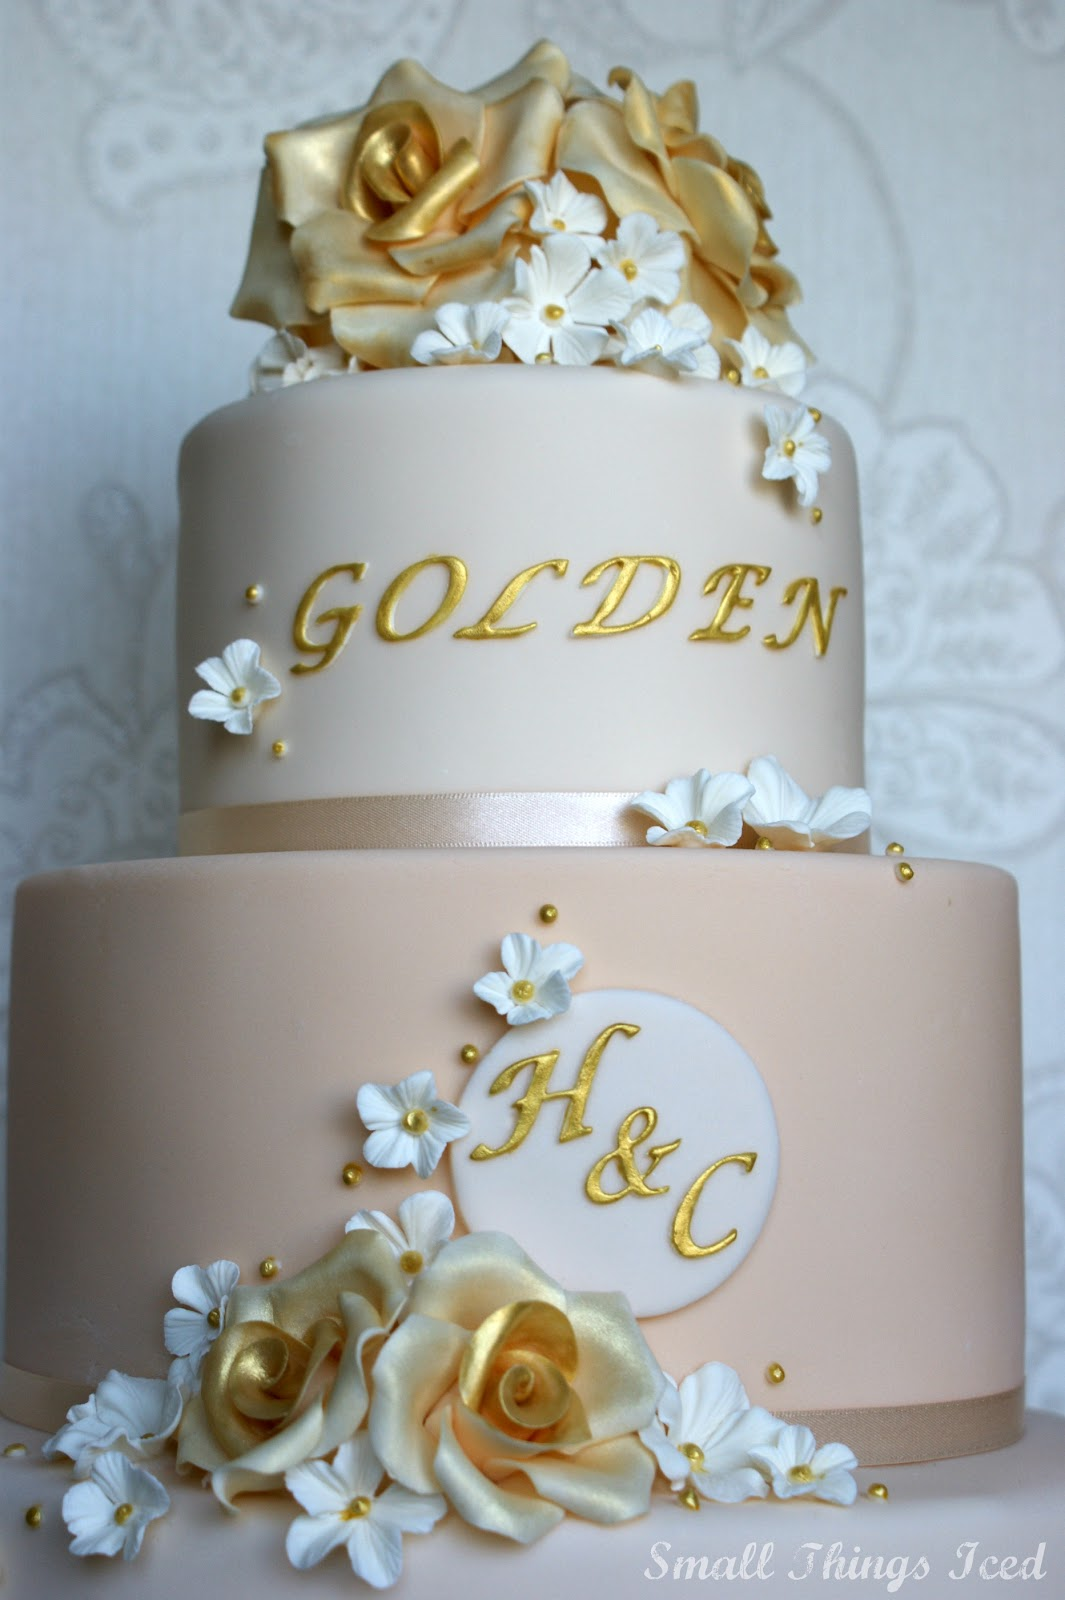 small things iced golden wedding anniversary cake. Black Bedroom Furniture Sets. Home Design Ideas